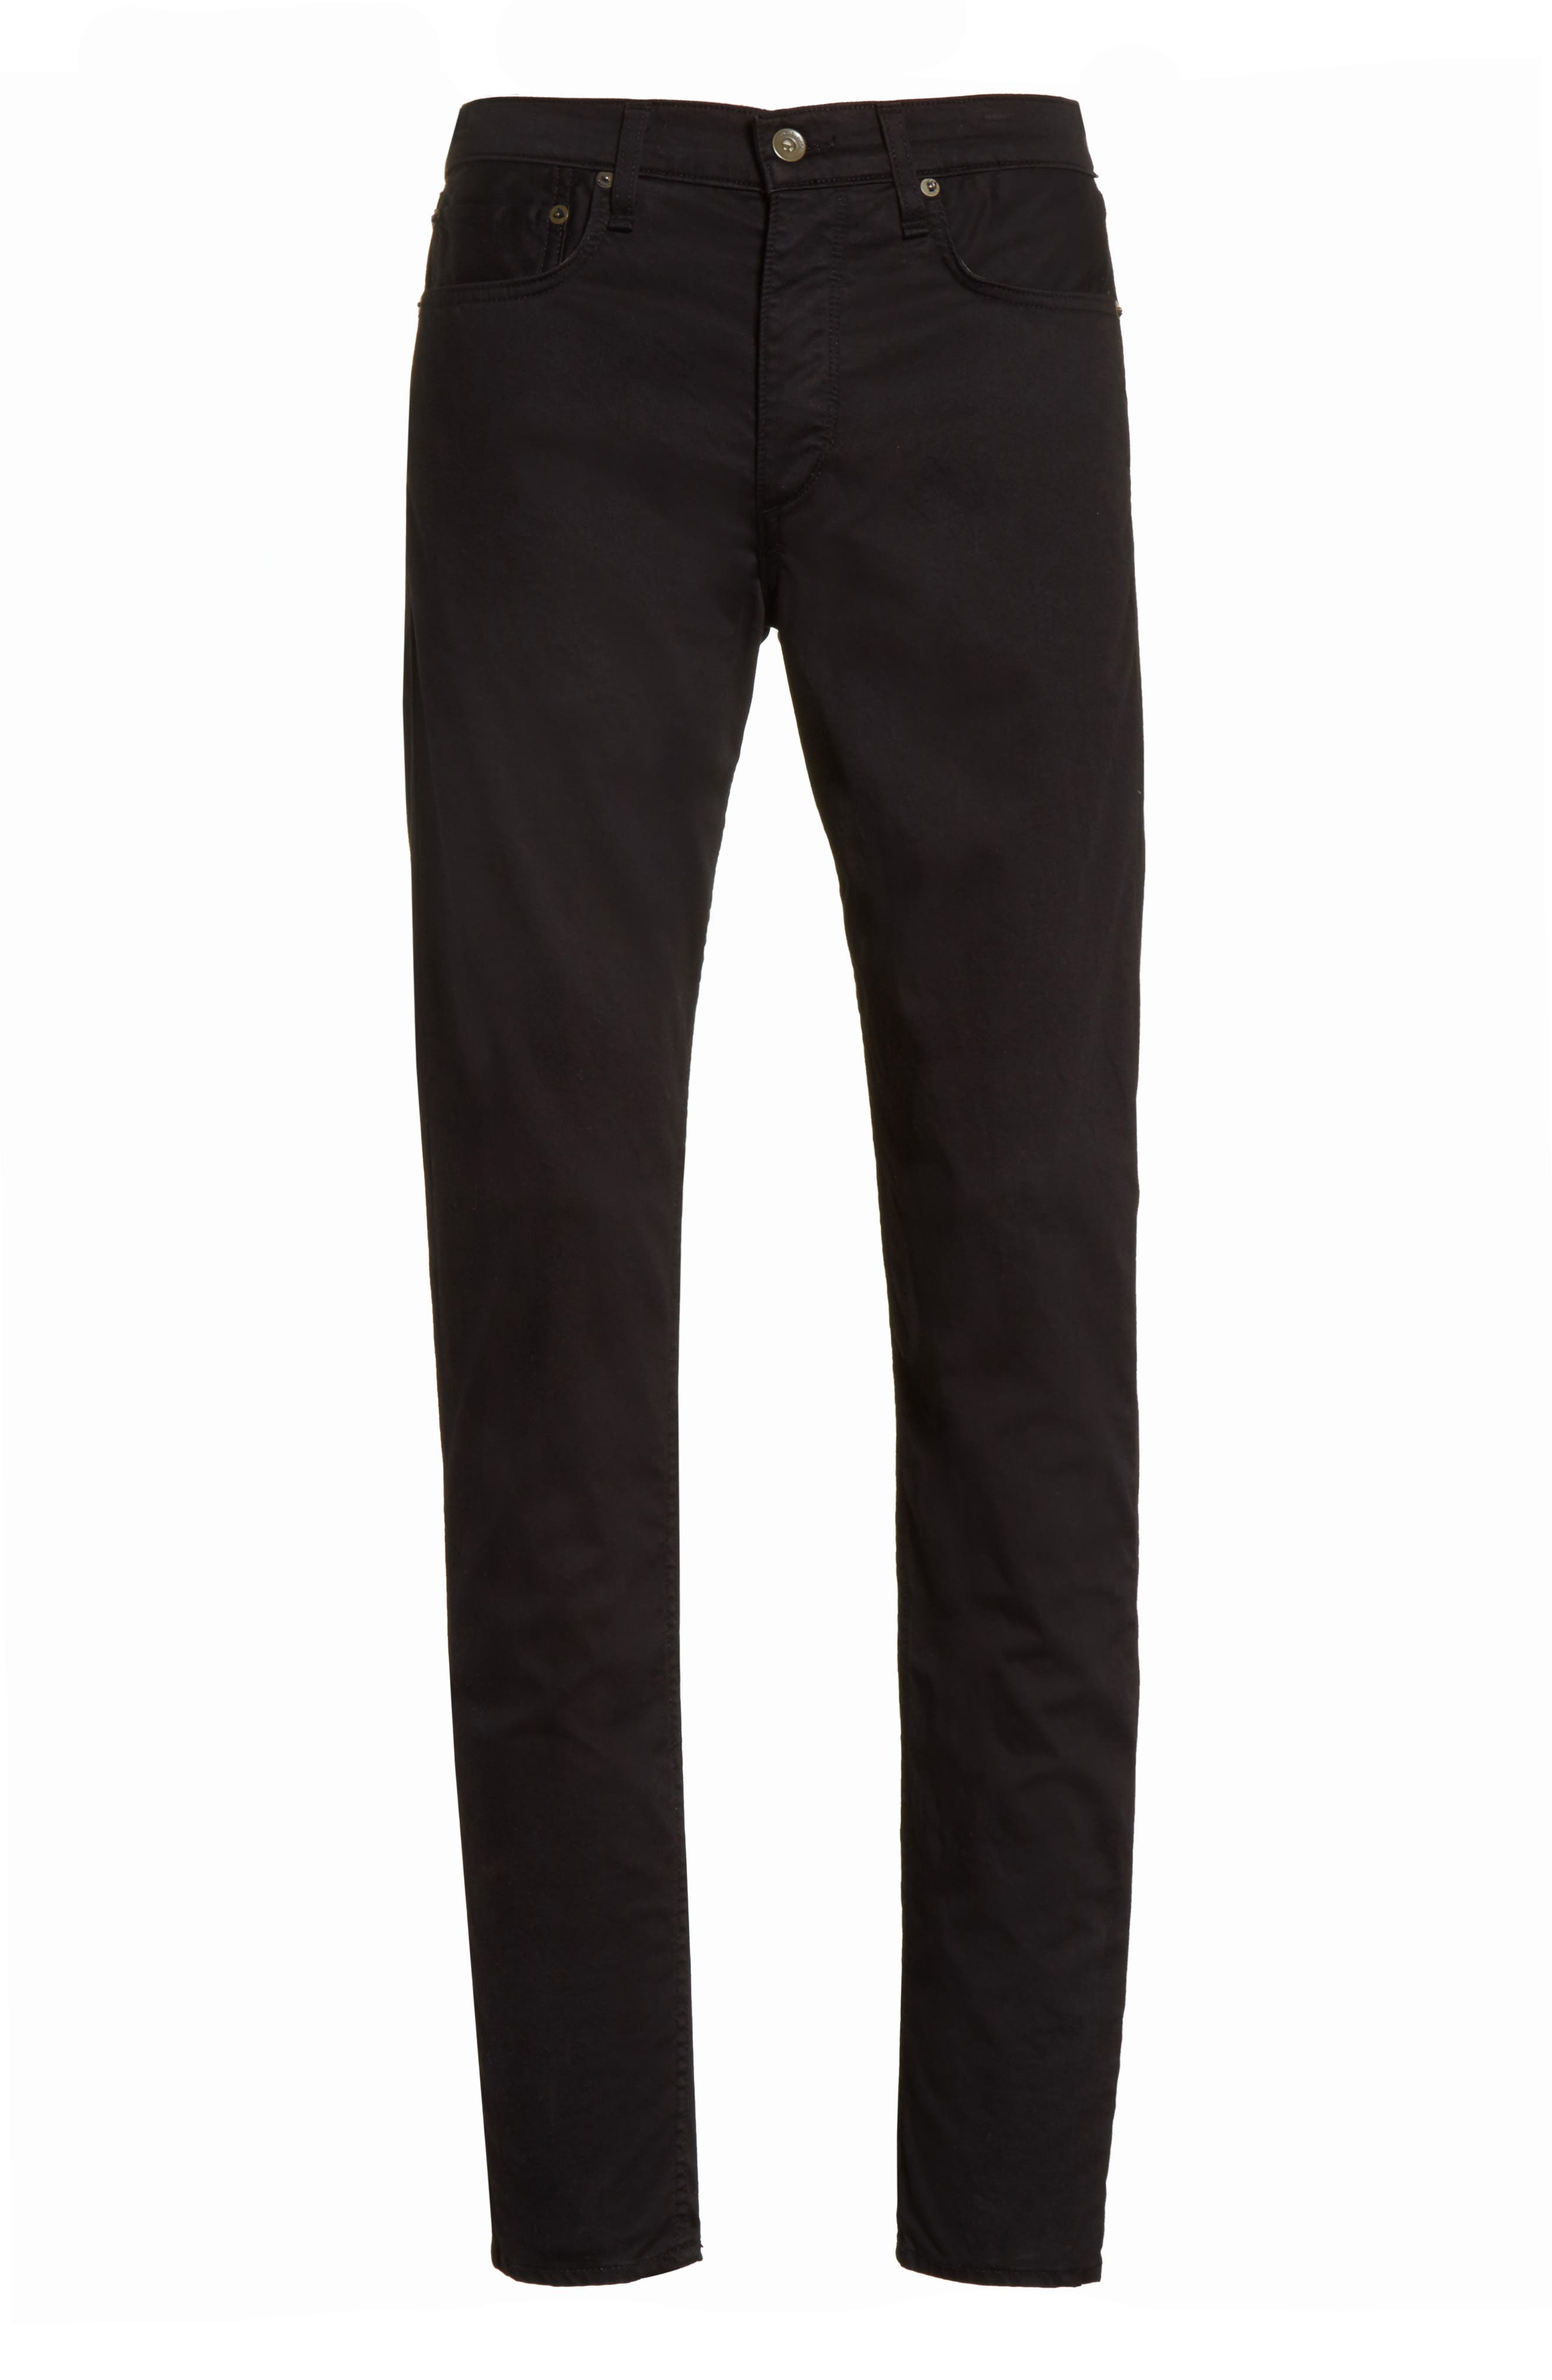 Fit 1 Twill Skinny Fit Pants,                             Alternate thumbnail 6, color,                             001